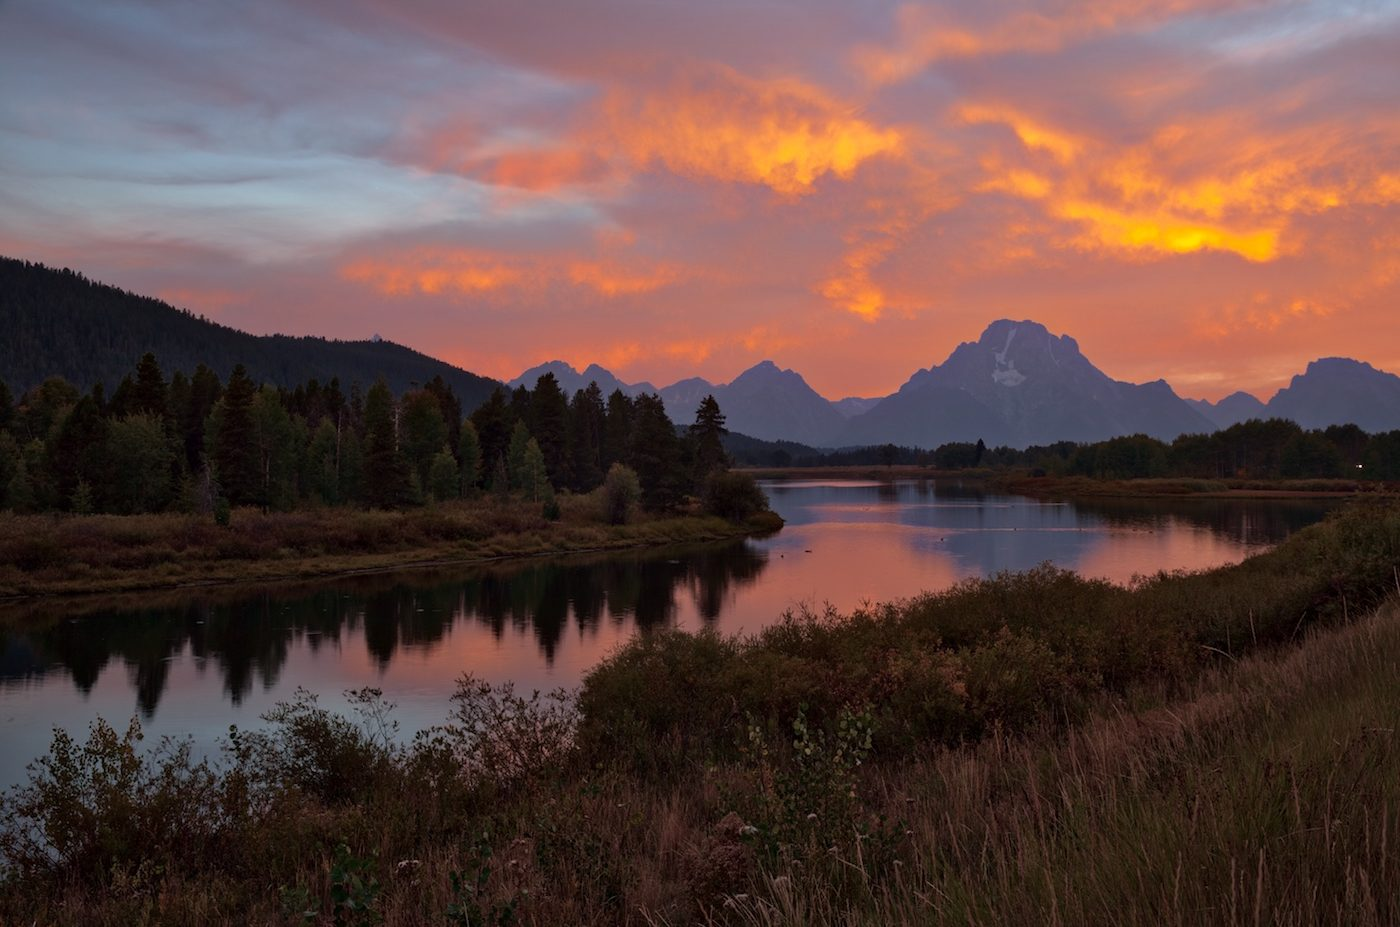 Sunset at Oxbow Bend, Wyoming.